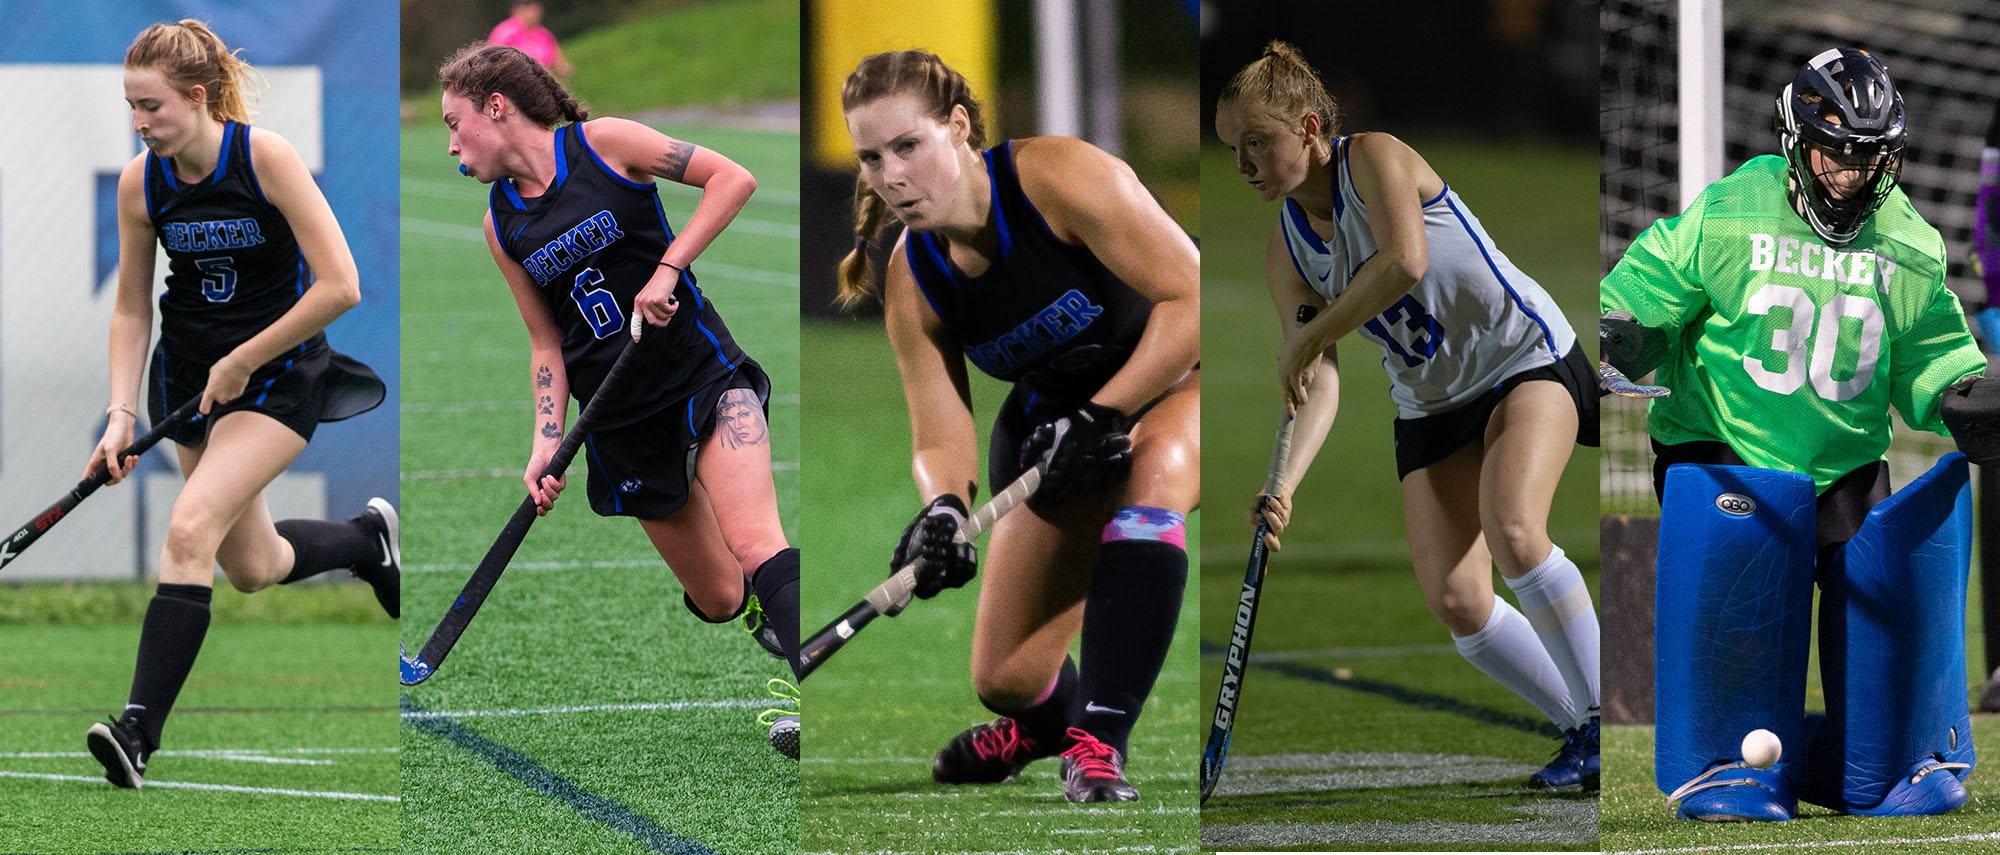 Hawks Field Hockey Preview (From L to R): Katherine Bernier, Amy Cooper, Samantha Carter, Lauren Niemann, and Victoria Pilpel